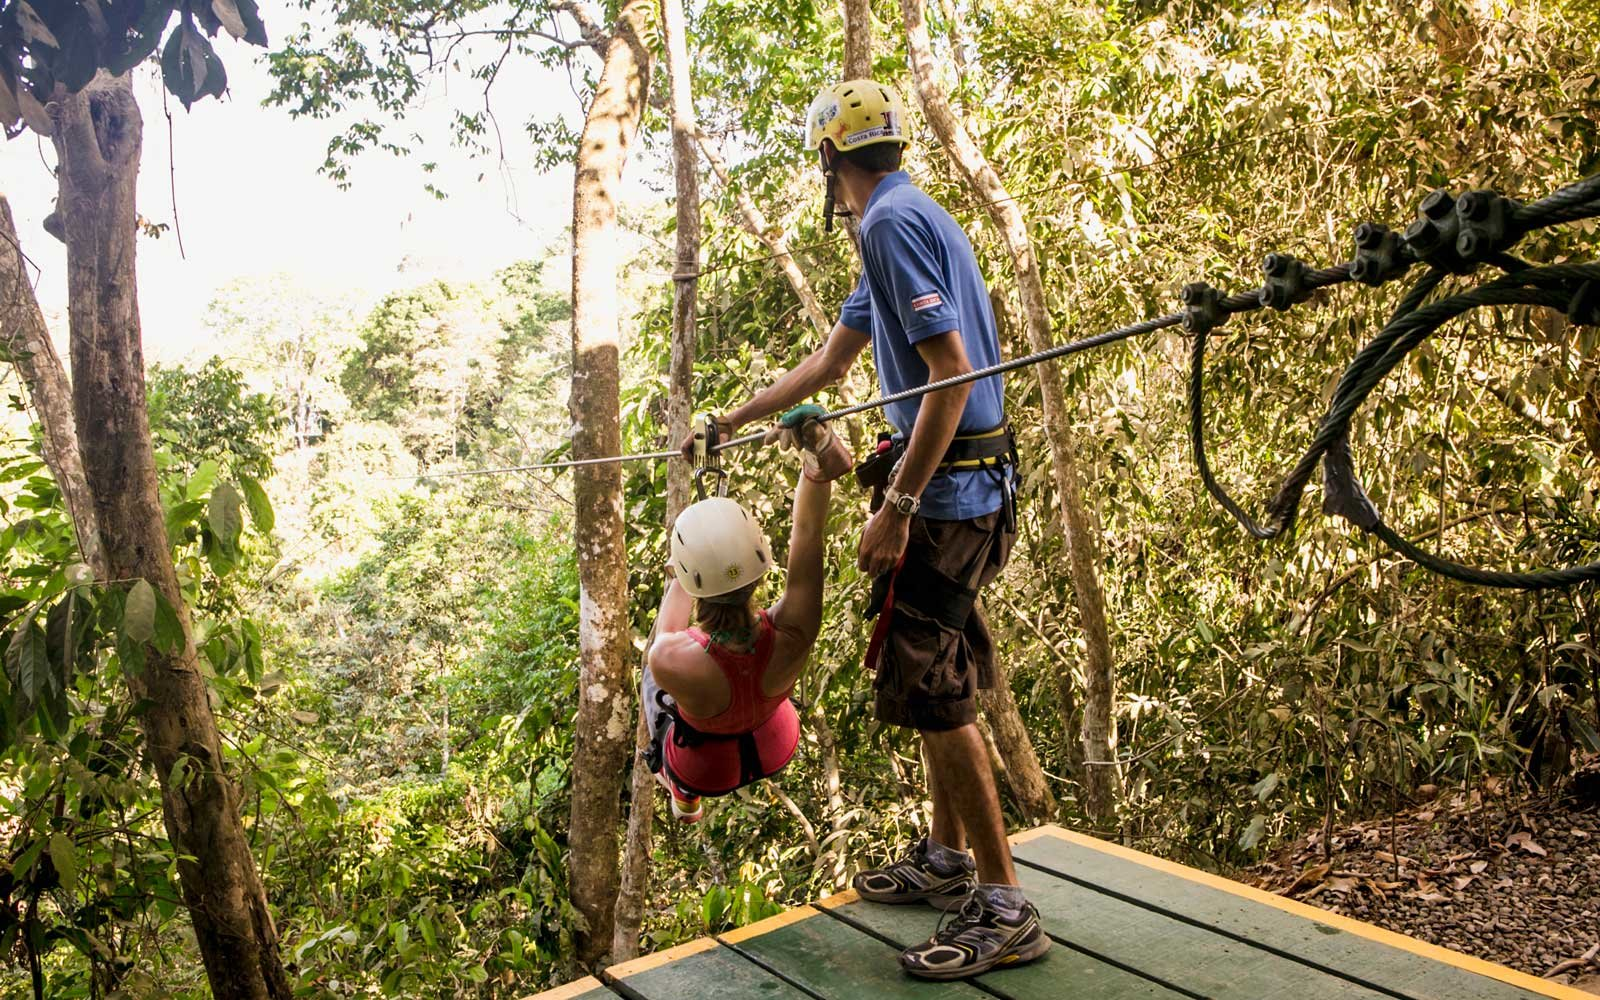 Go zip-lining in the rain forest of Costa Rica